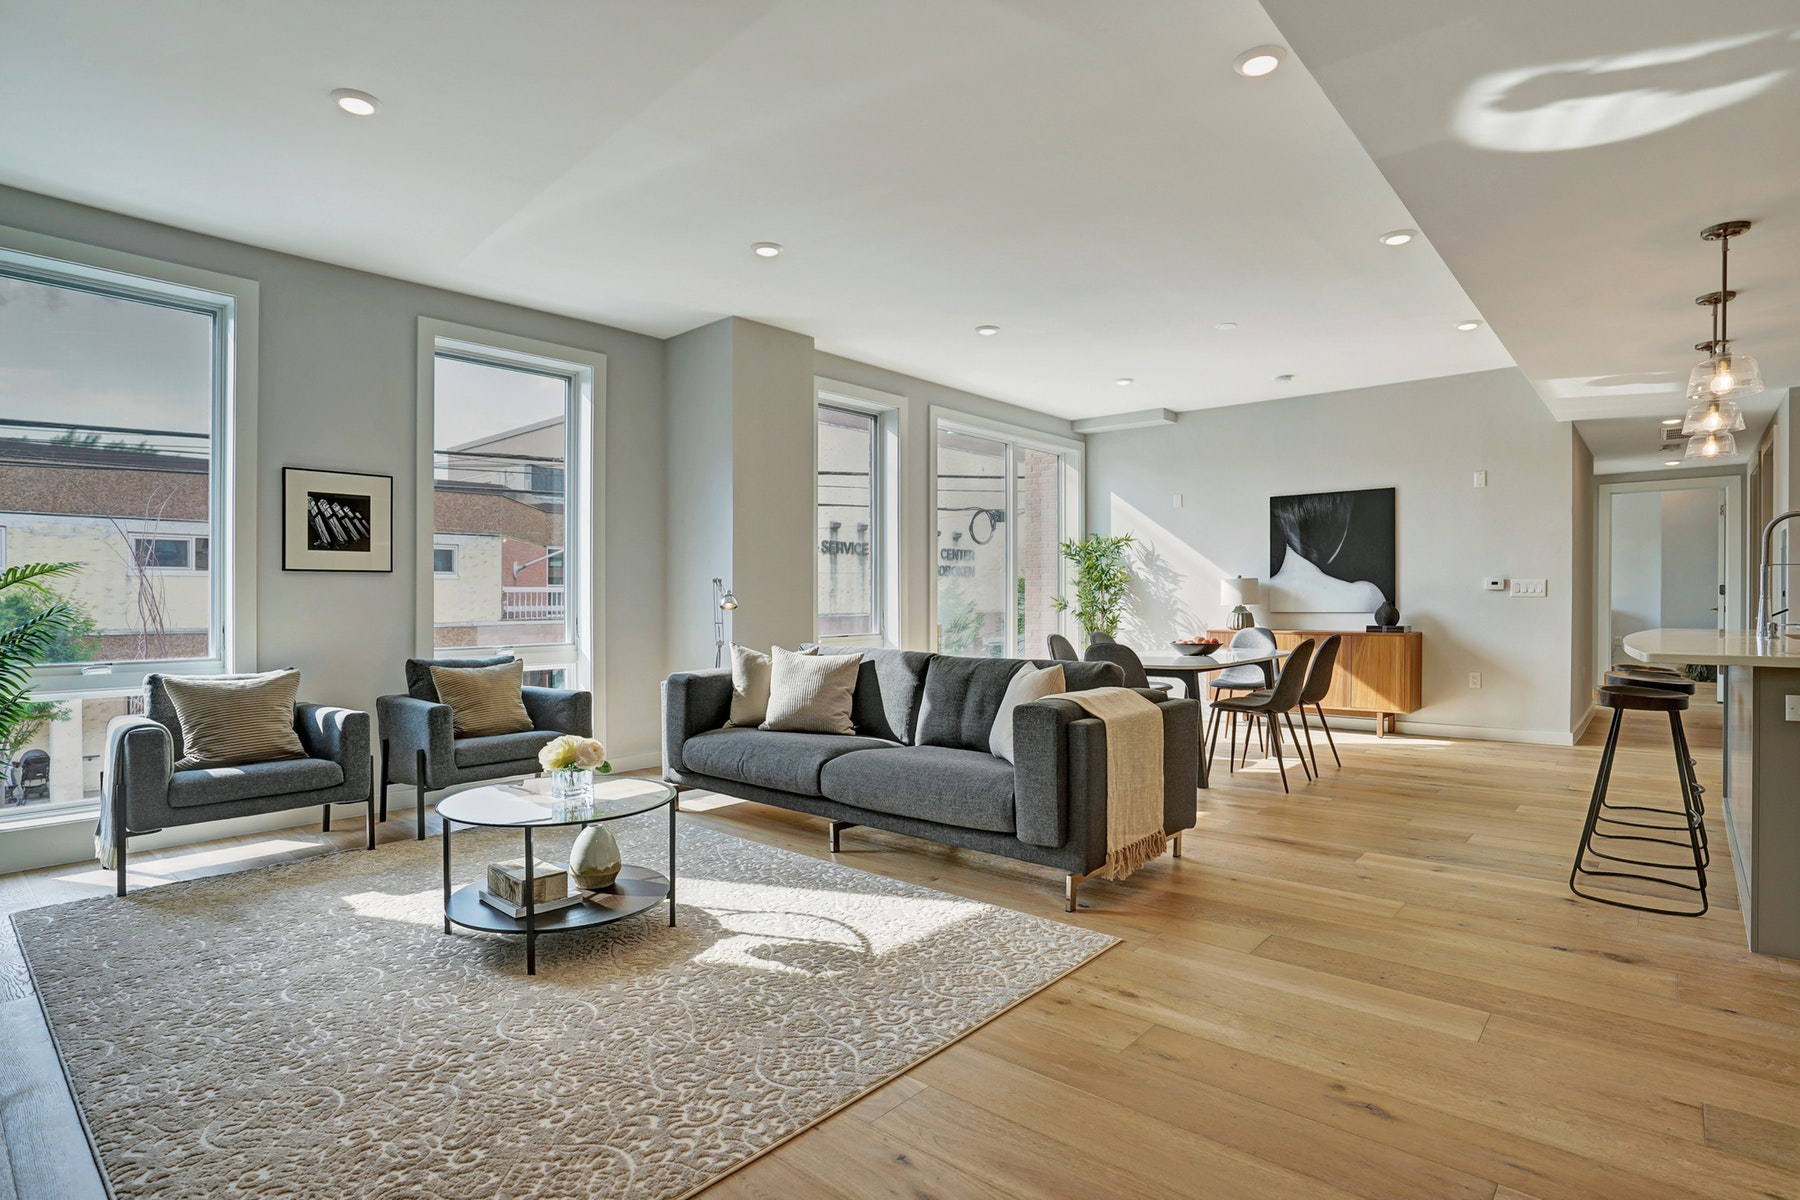 Condominiums for Sale at THE GRAND RESIDENCIES 115 Grand St #206 Hoboken, New Jersey 07030 United States